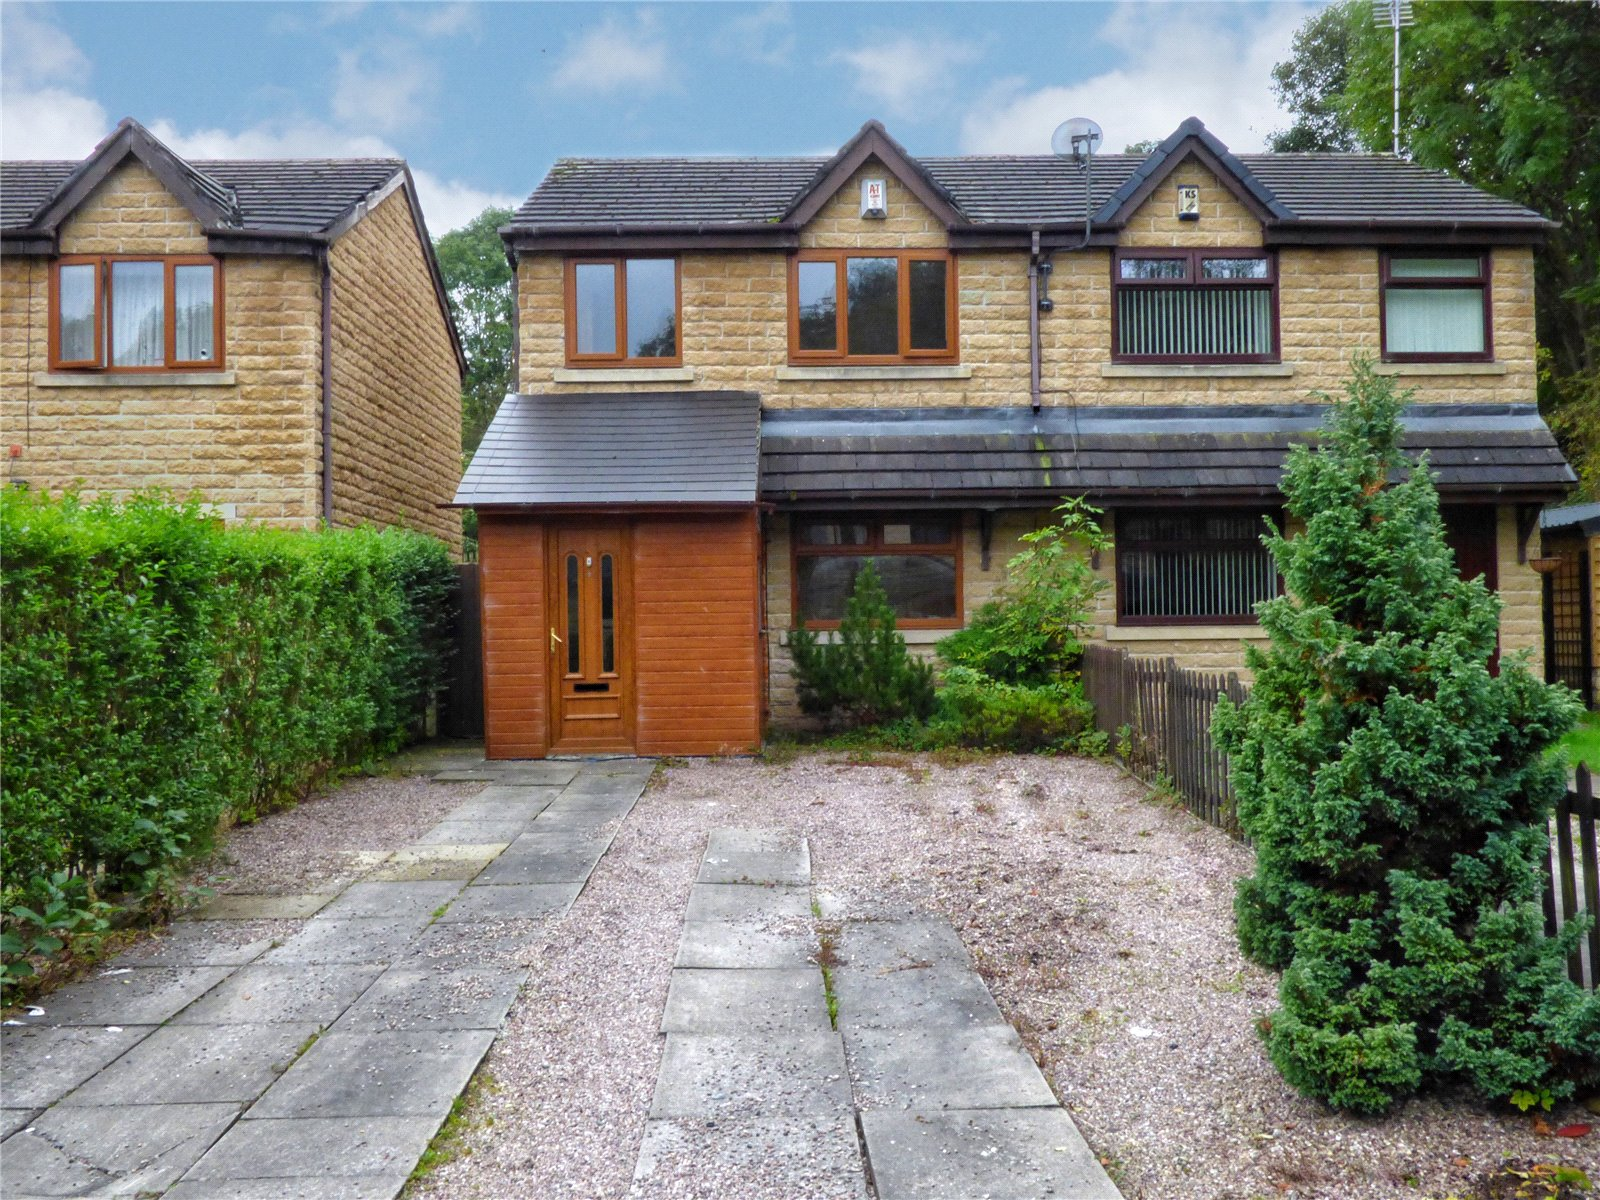 3 Bedrooms Semi Detached House for sale in Woodlands View, Rochdale, Greater Manchester, OL16